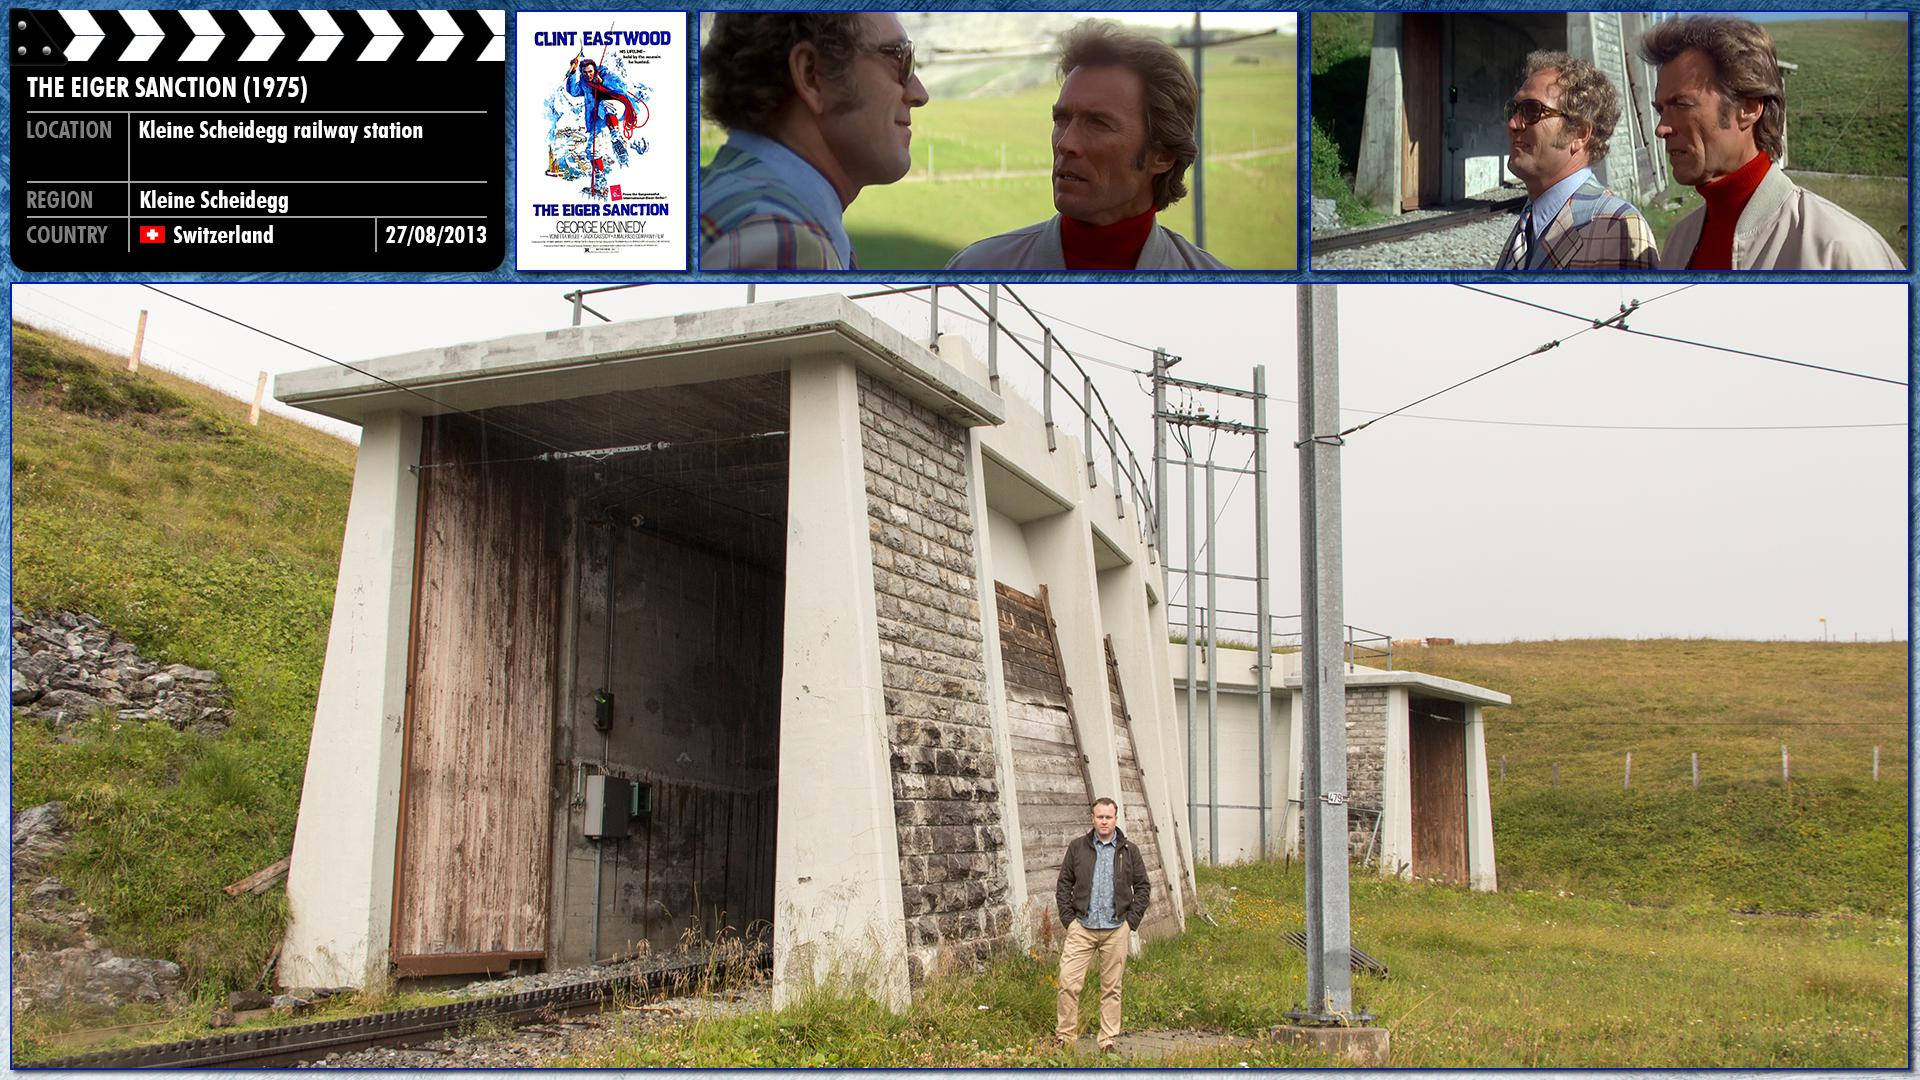 Filming location photo for The Eiger Sanction (1975) 2 of 2